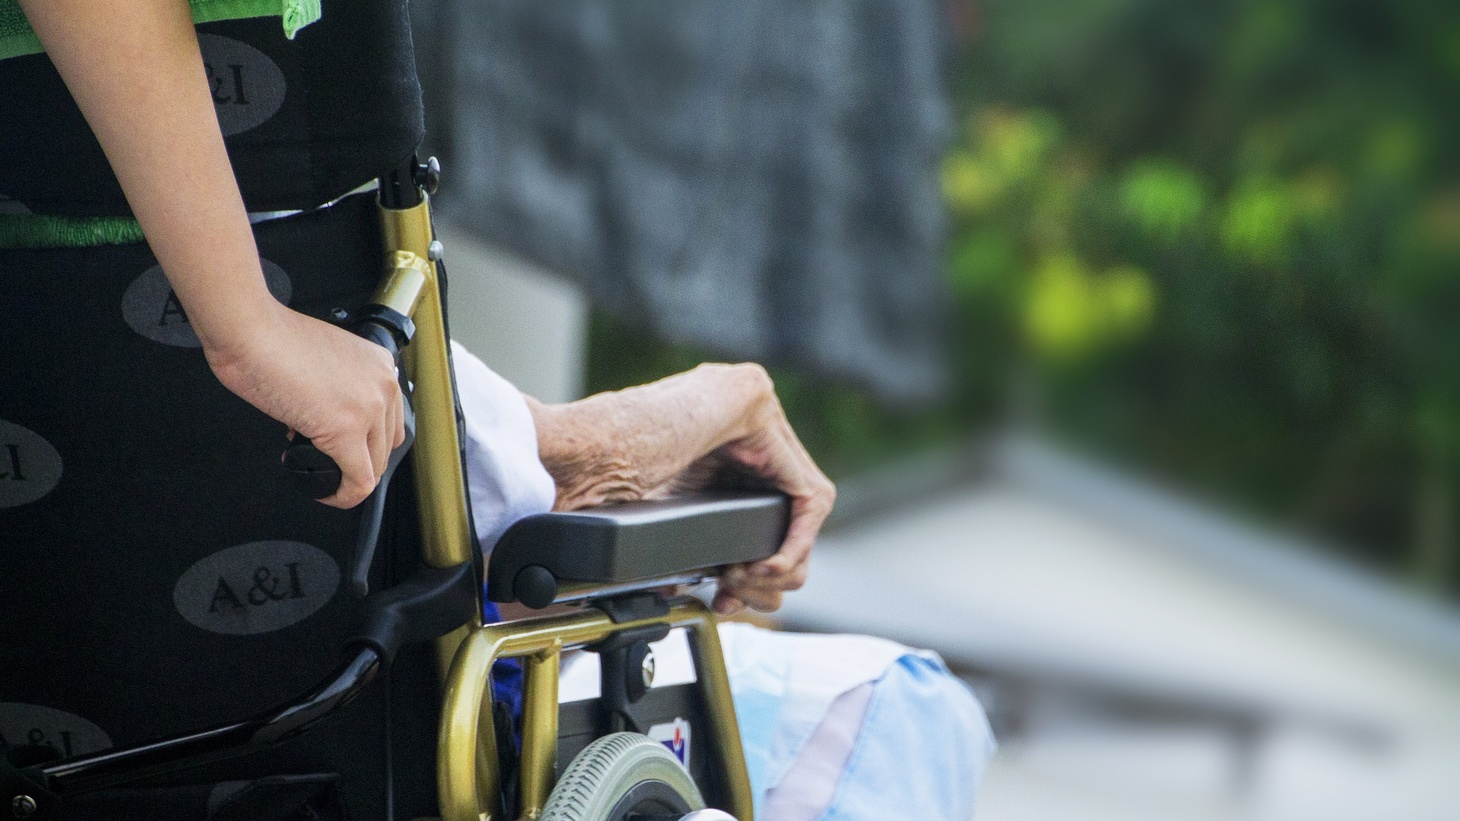 COVID has been devastating nursing homes. Can it change how the US thinks of end-of-life care?